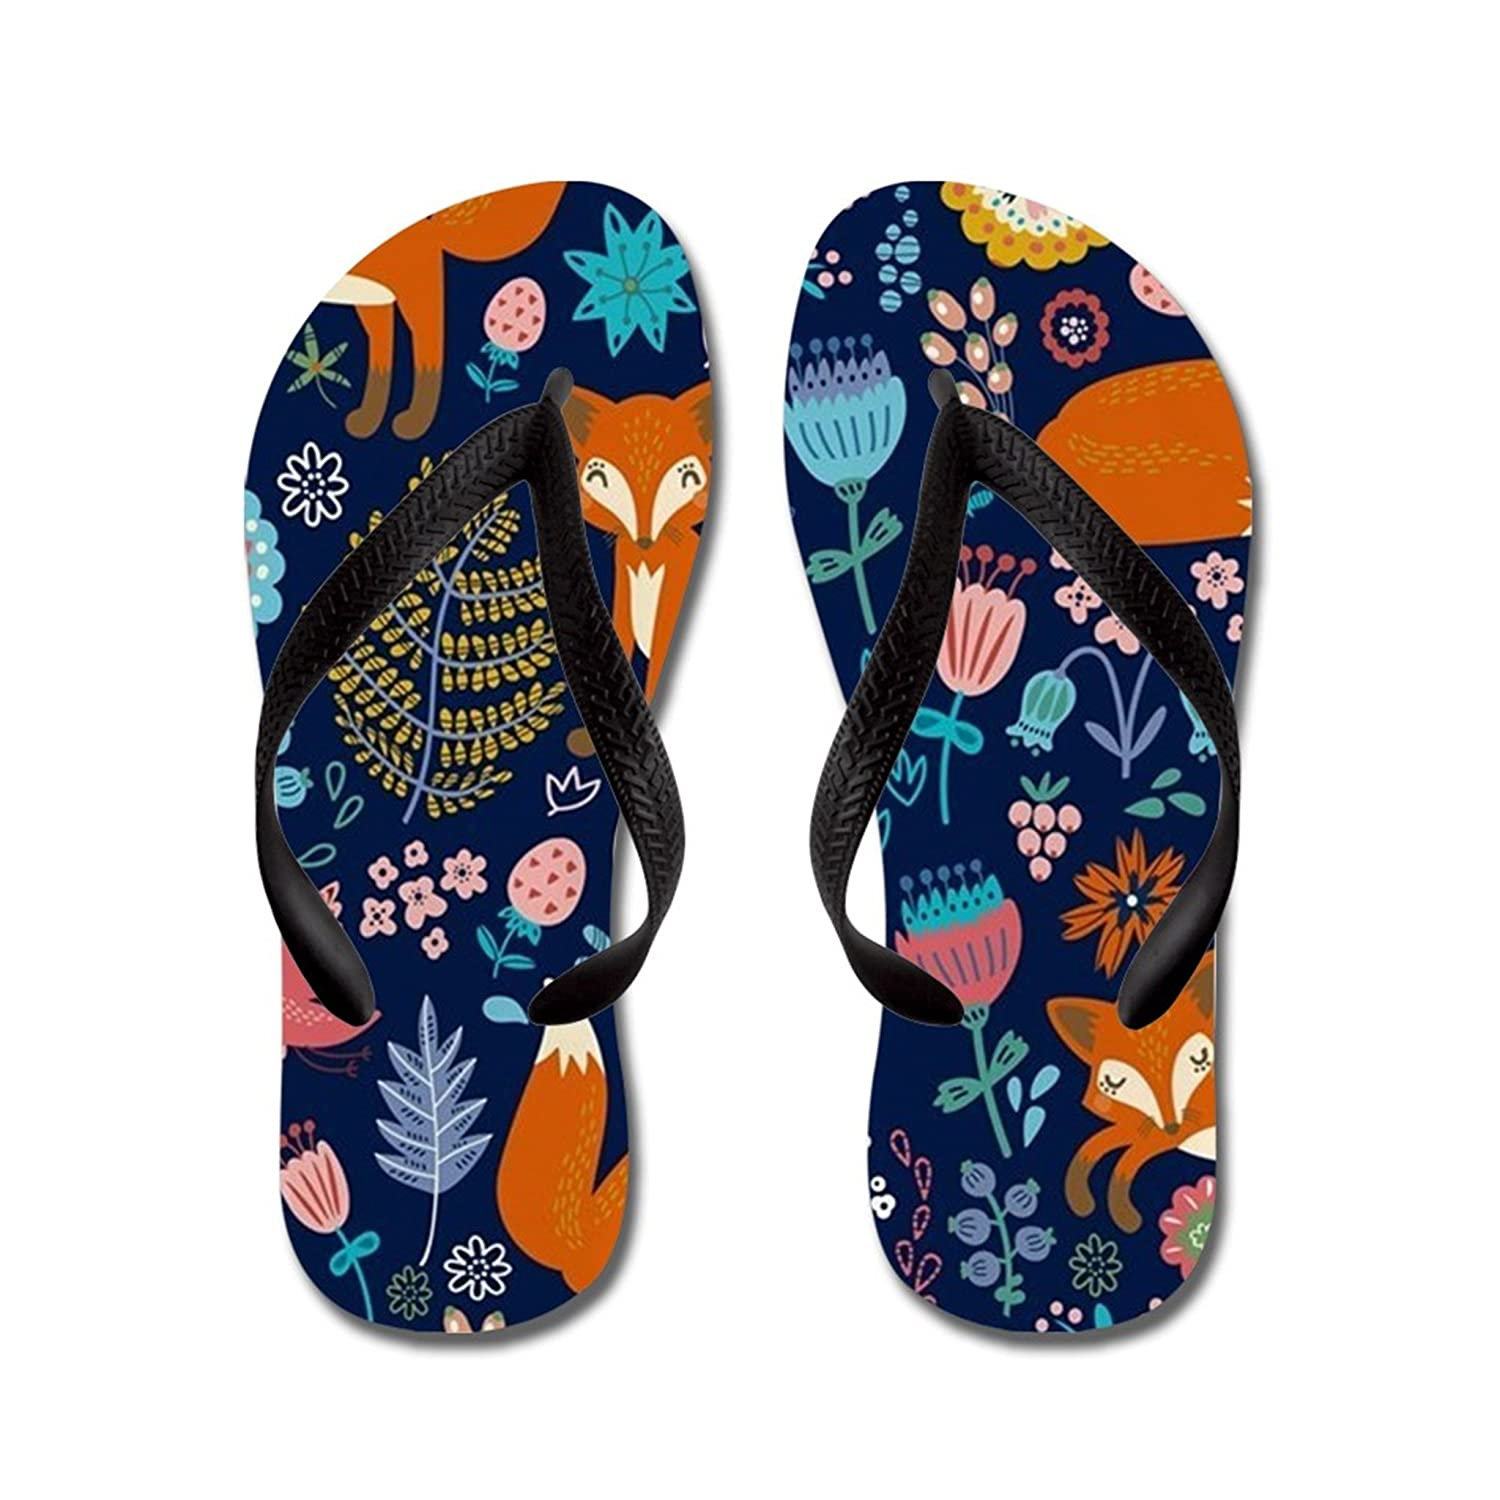 Lplpol Floral Cute Fox Pattern Flip Flops for Kids and Adult Unisex Beach Sandals Pool Shoes Party Slippers